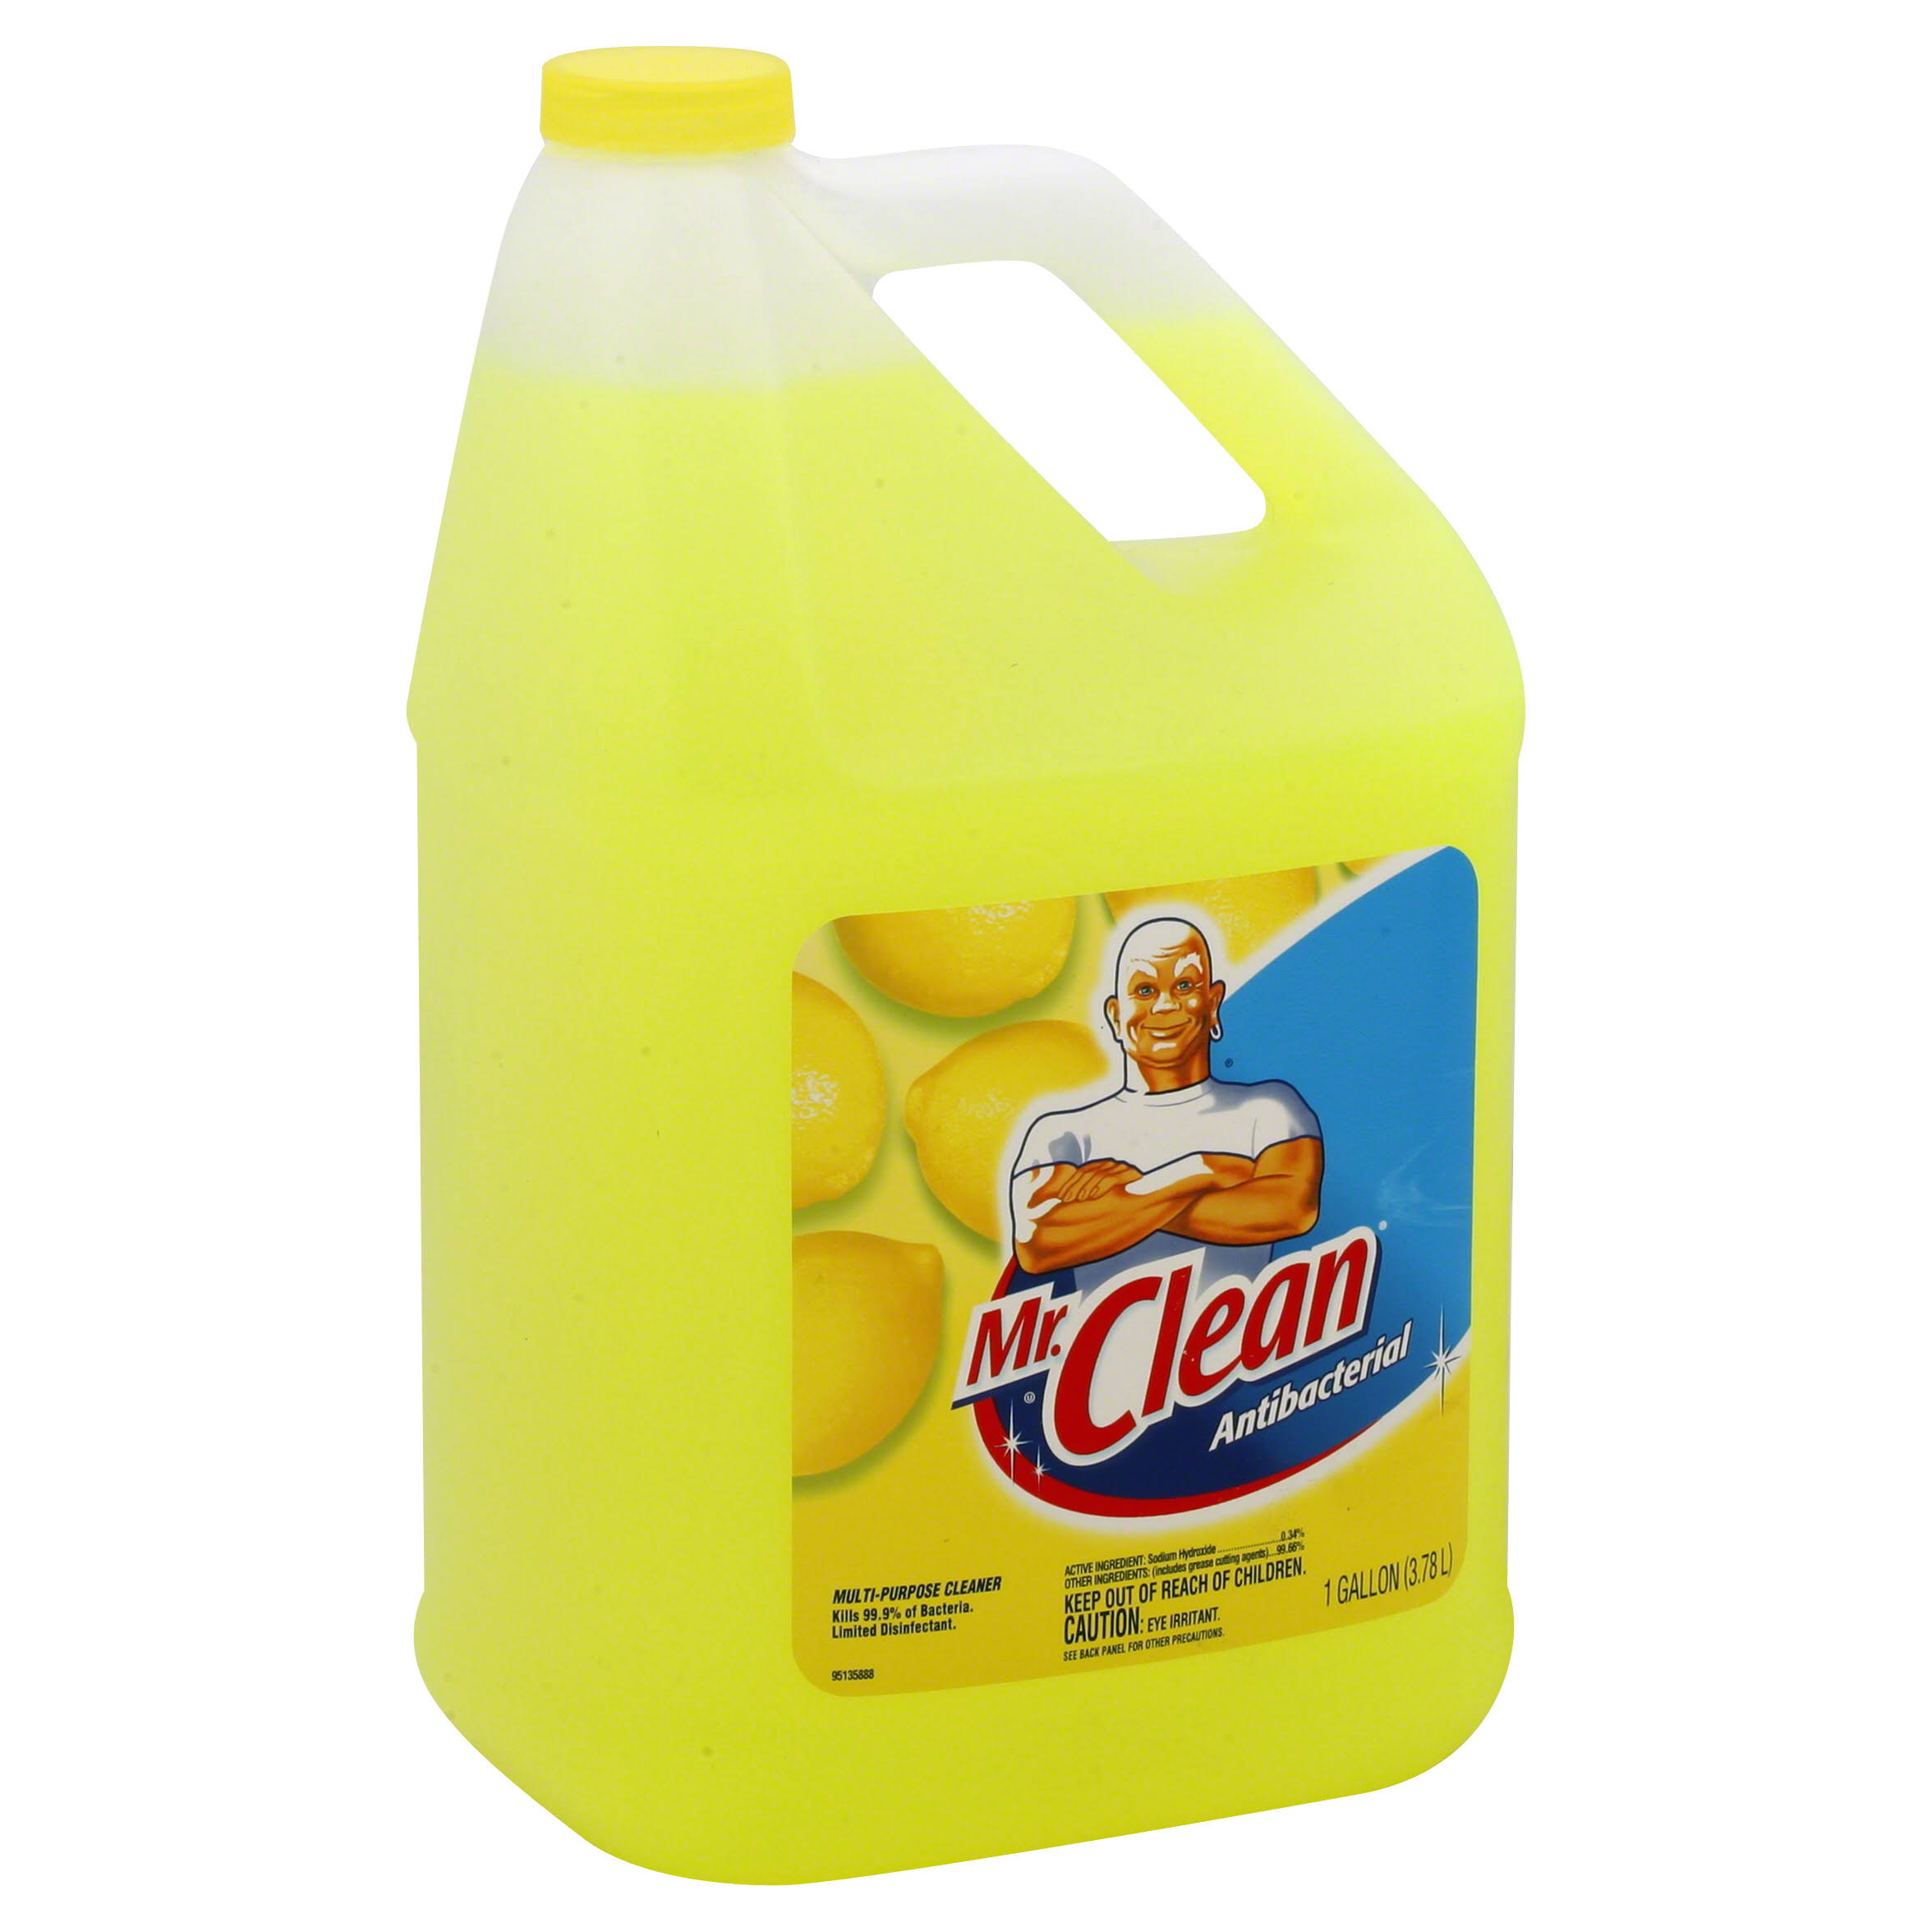 Mr. Clean Multi Purpose Cleaner - Summer Citrus, 3.78L